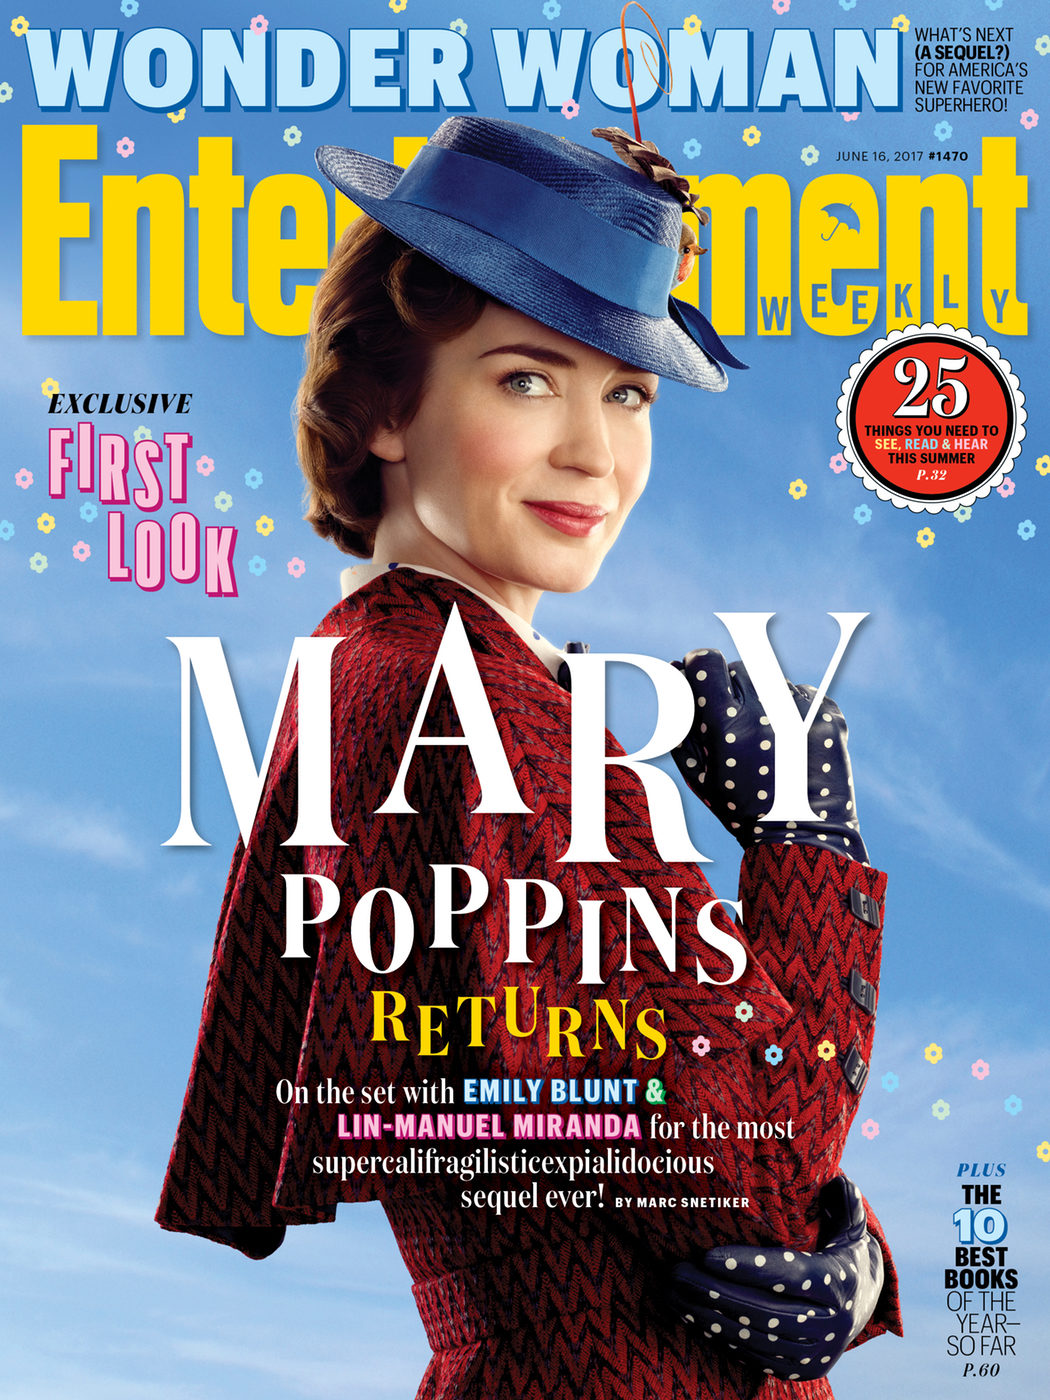 Portada de Entertainment Weekly con Emily Blunt